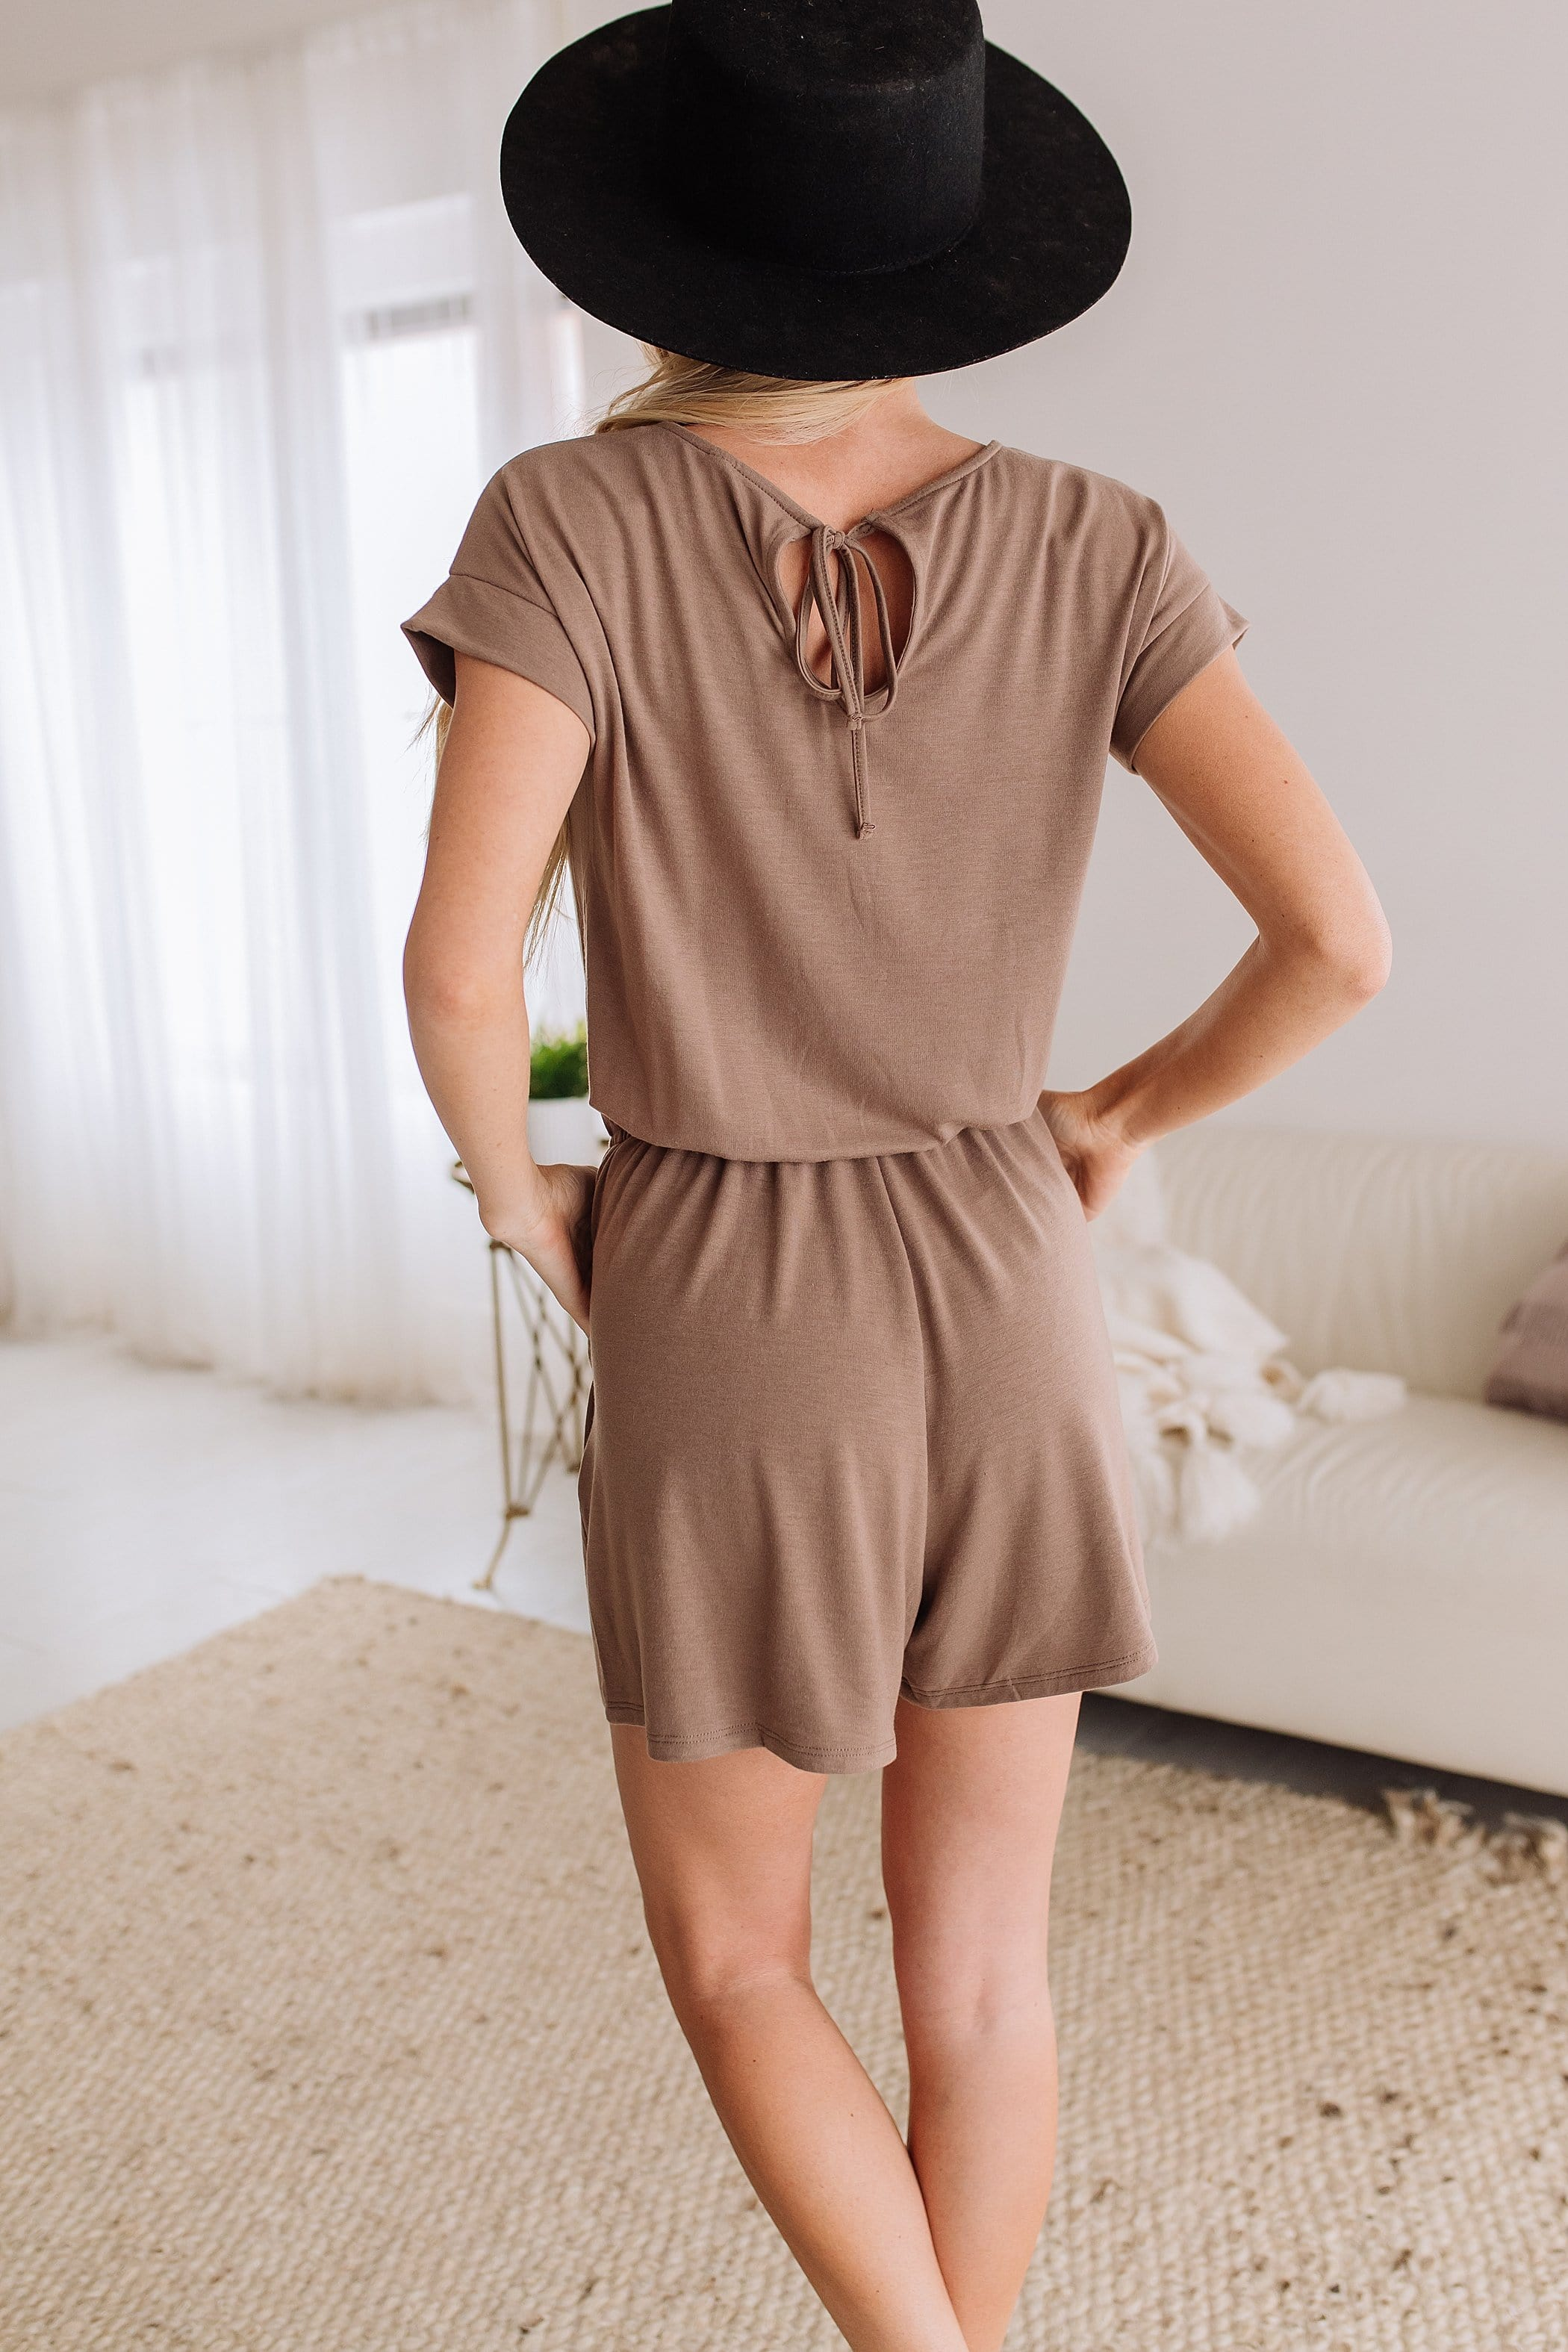 The Brindee Romper in Black, Mocha and Titanium